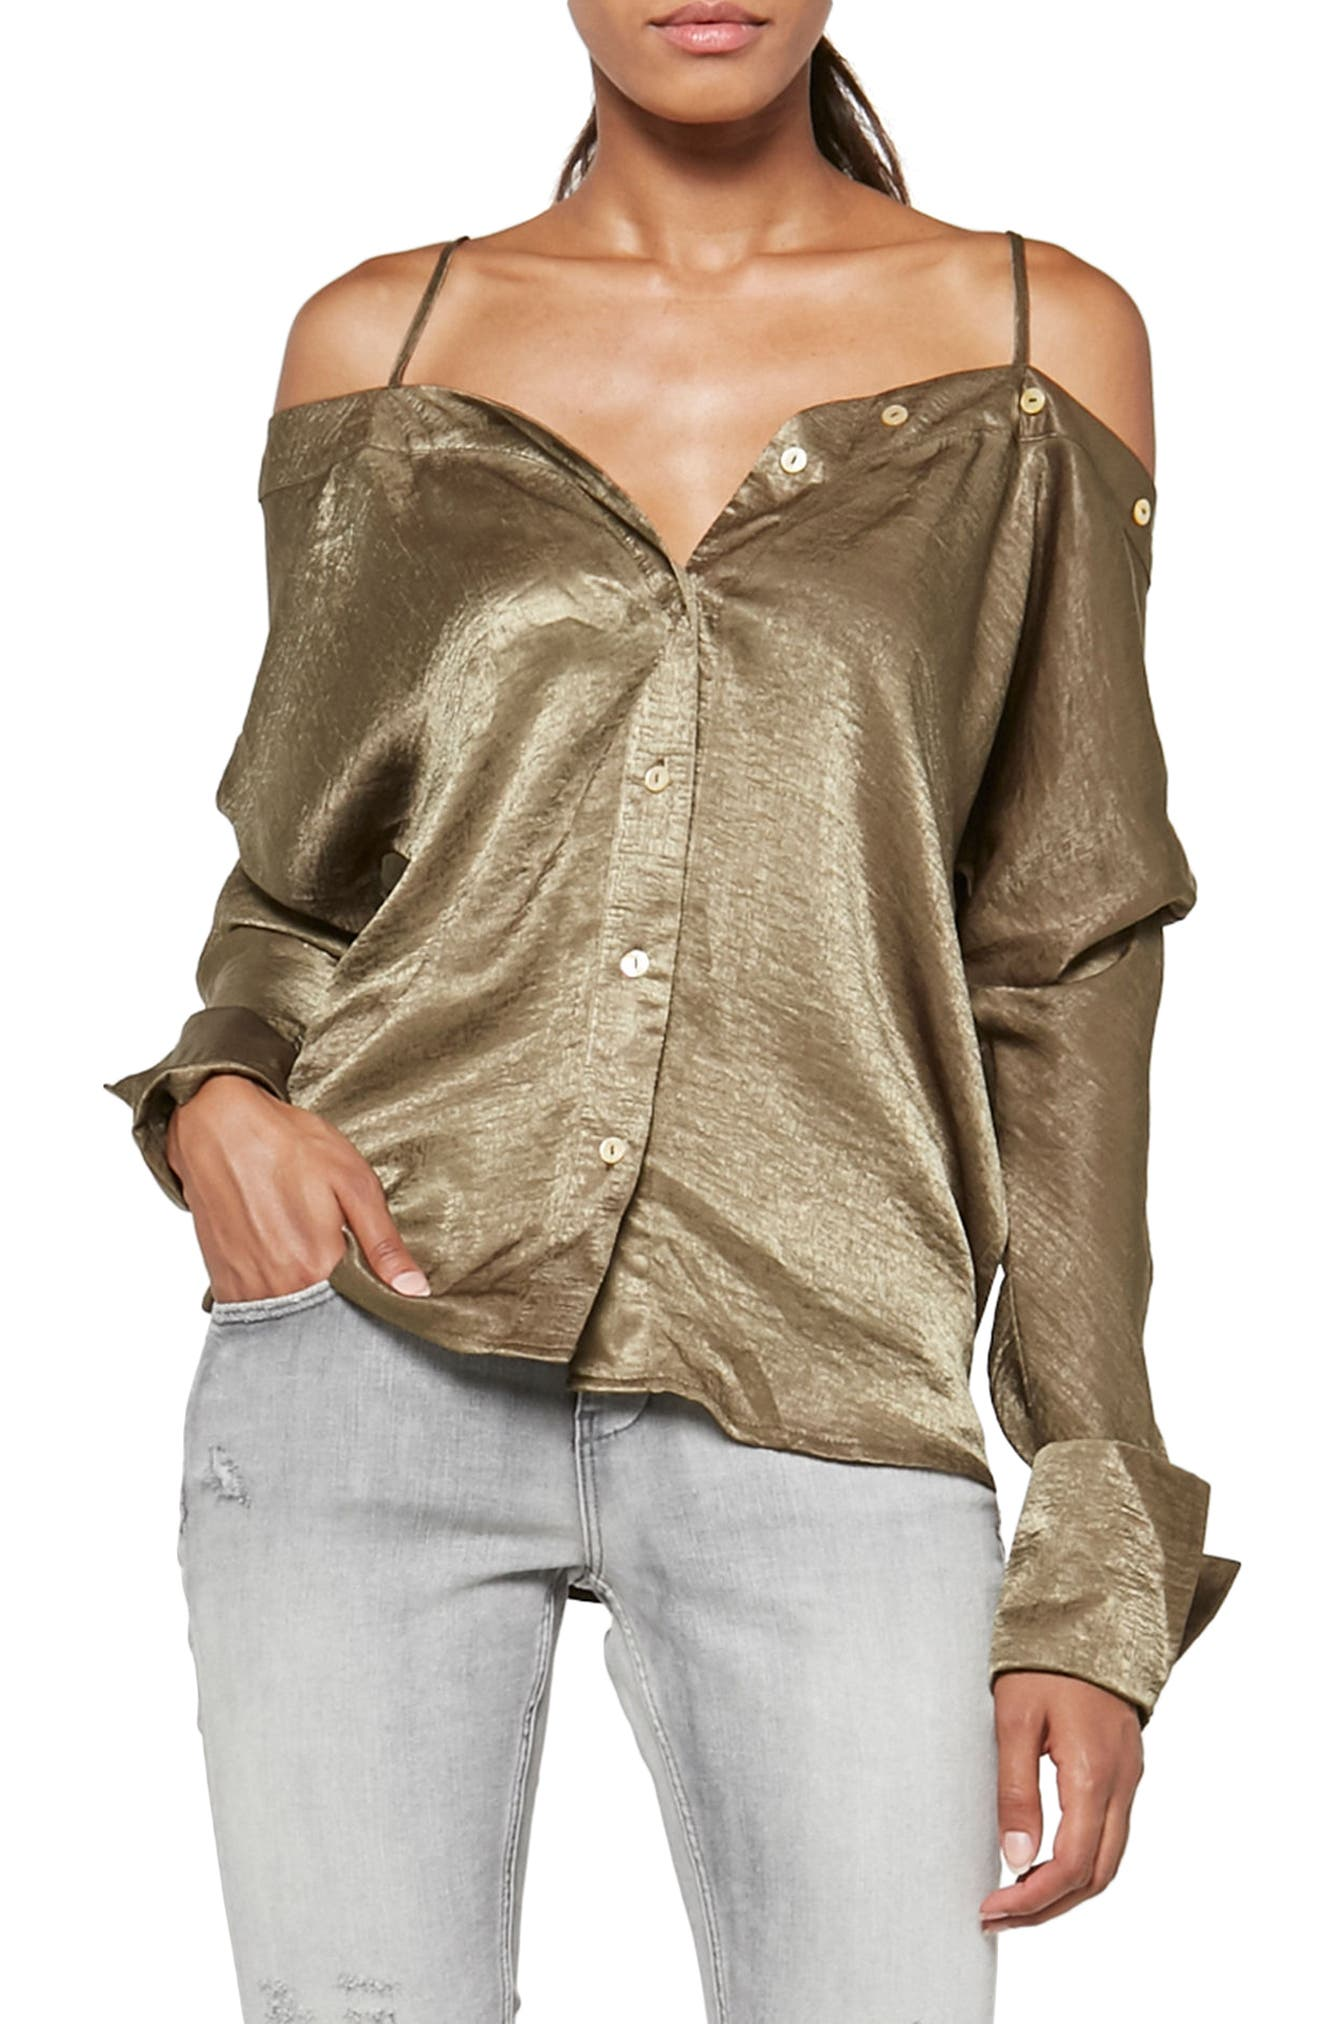 Alpha & Omega Satin Off the Shoulder Blouse,                             Main thumbnail 1, color,                             Olive